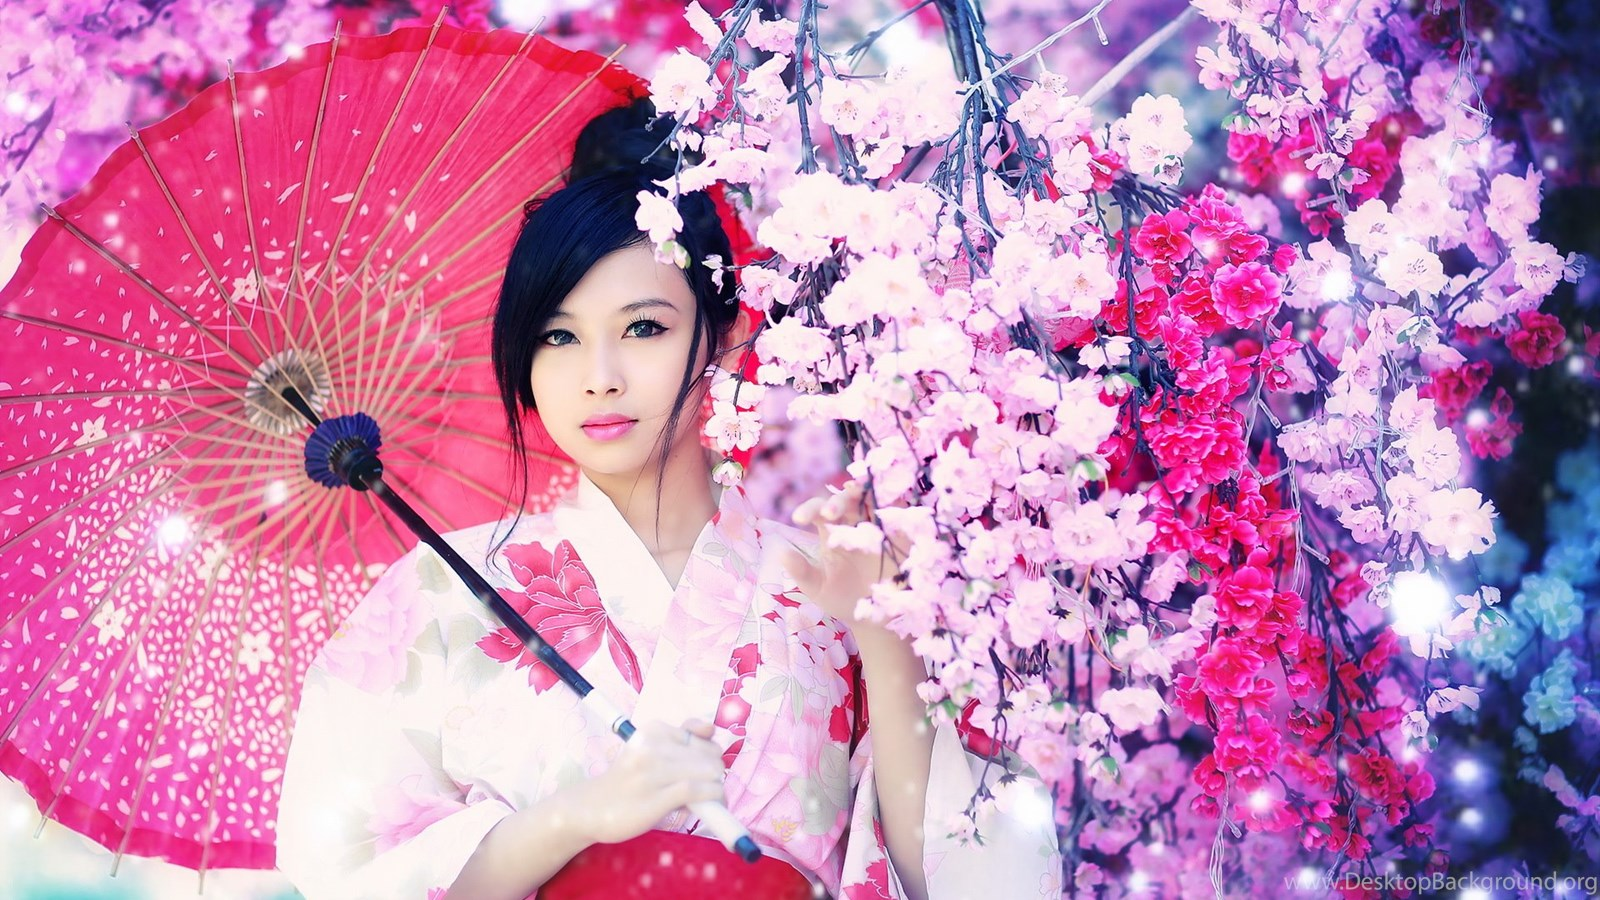 the japanese girl with an umbrella wallpapers desktop background